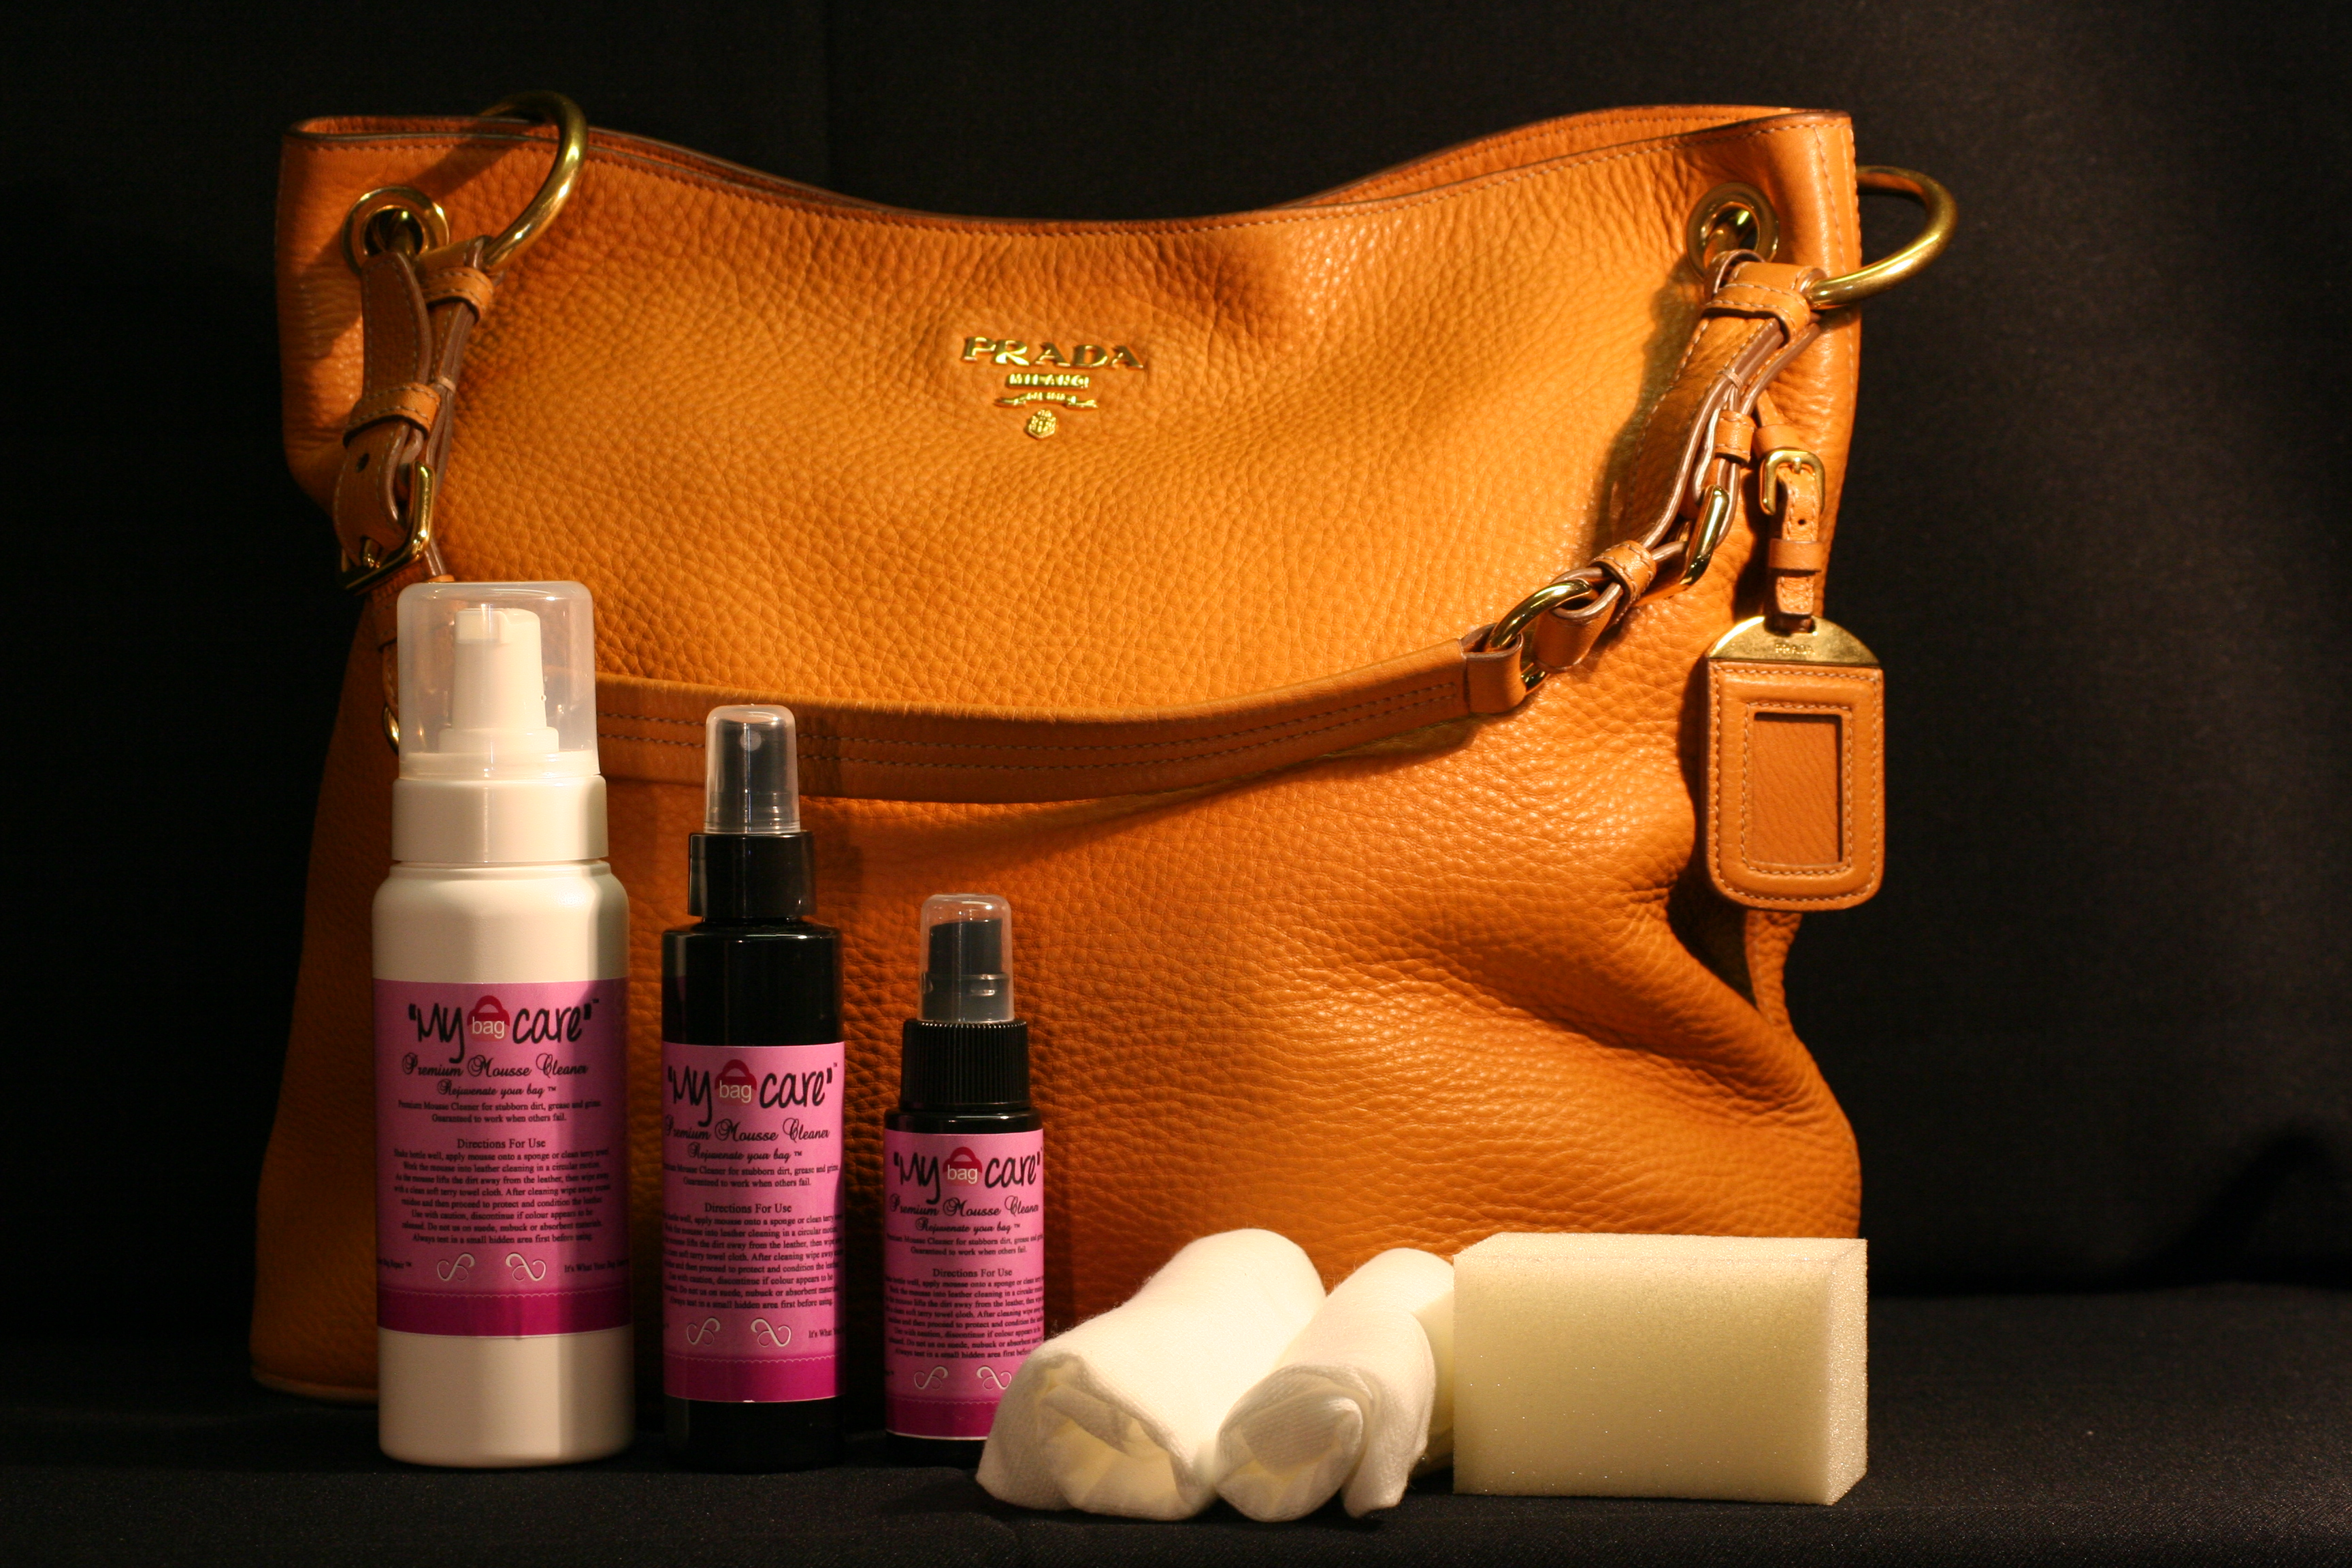 Handbag Care Products